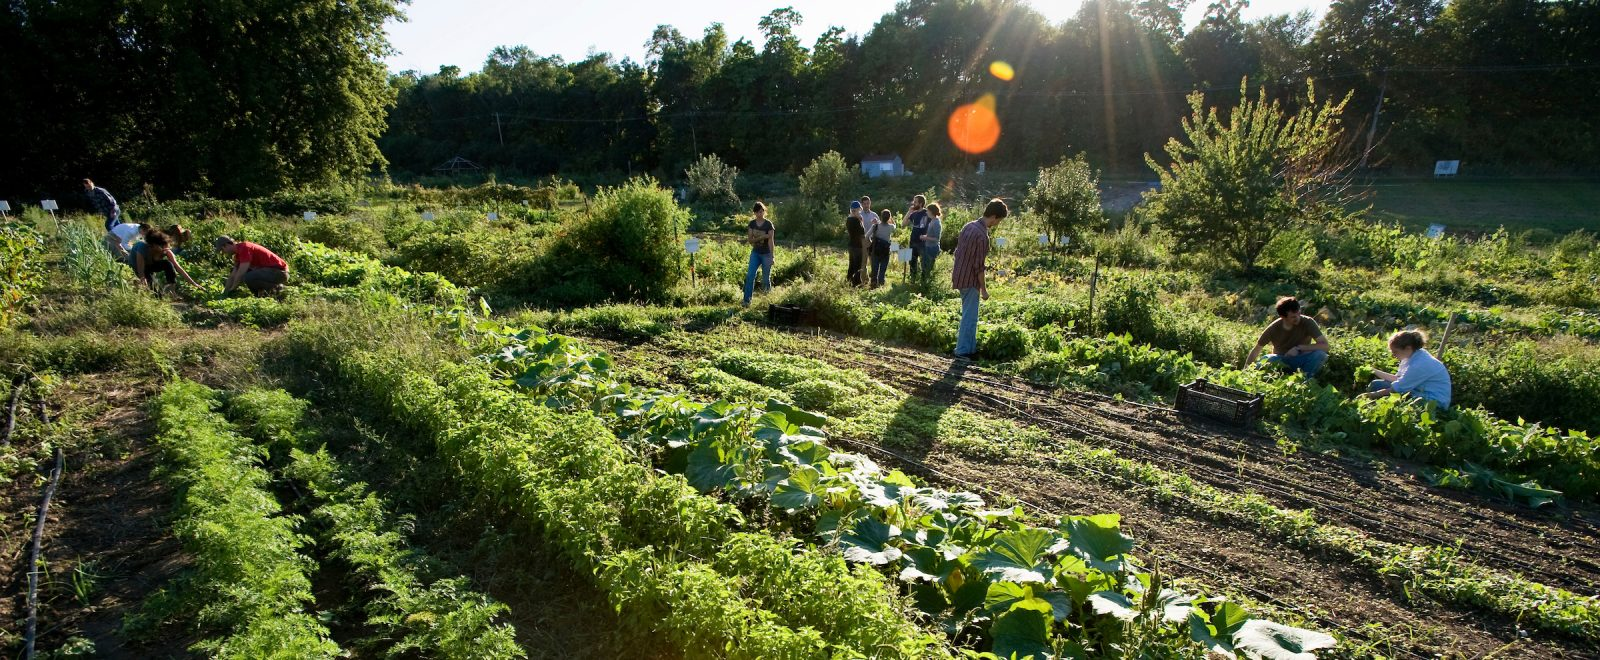 Community garden with a dozen people harvesting amidst the rows of crops